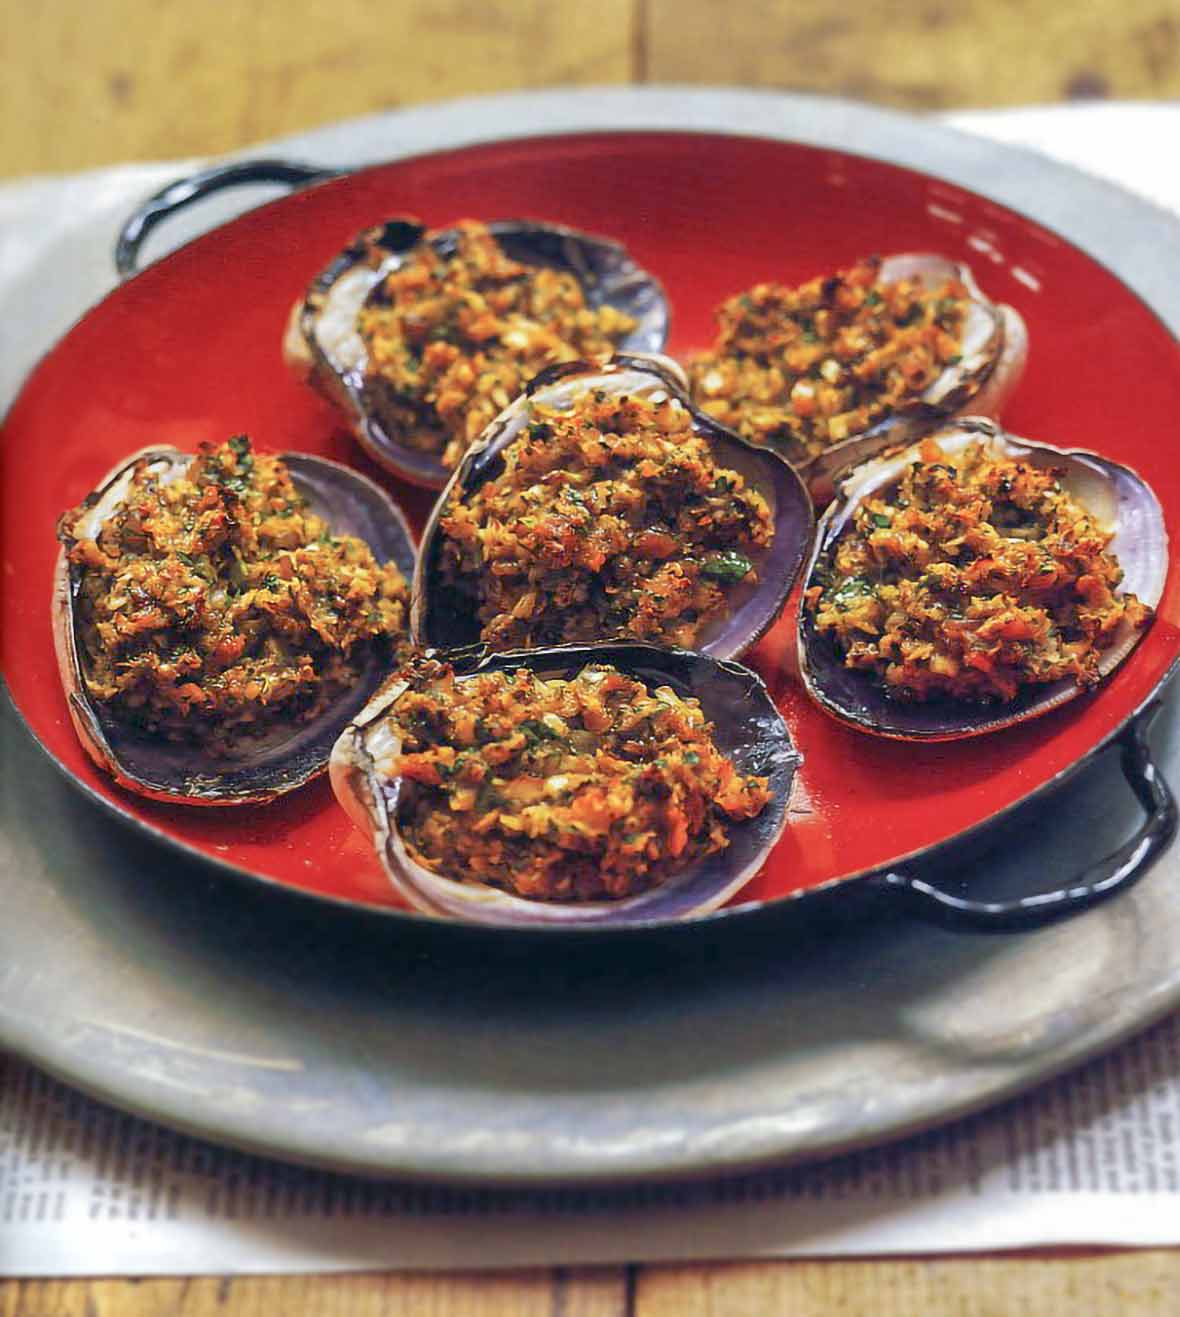 Red plate of six stuffed quahogs clams stuffed with breadcrumbs, chopped clams, parsley, Old Bay Seasoning